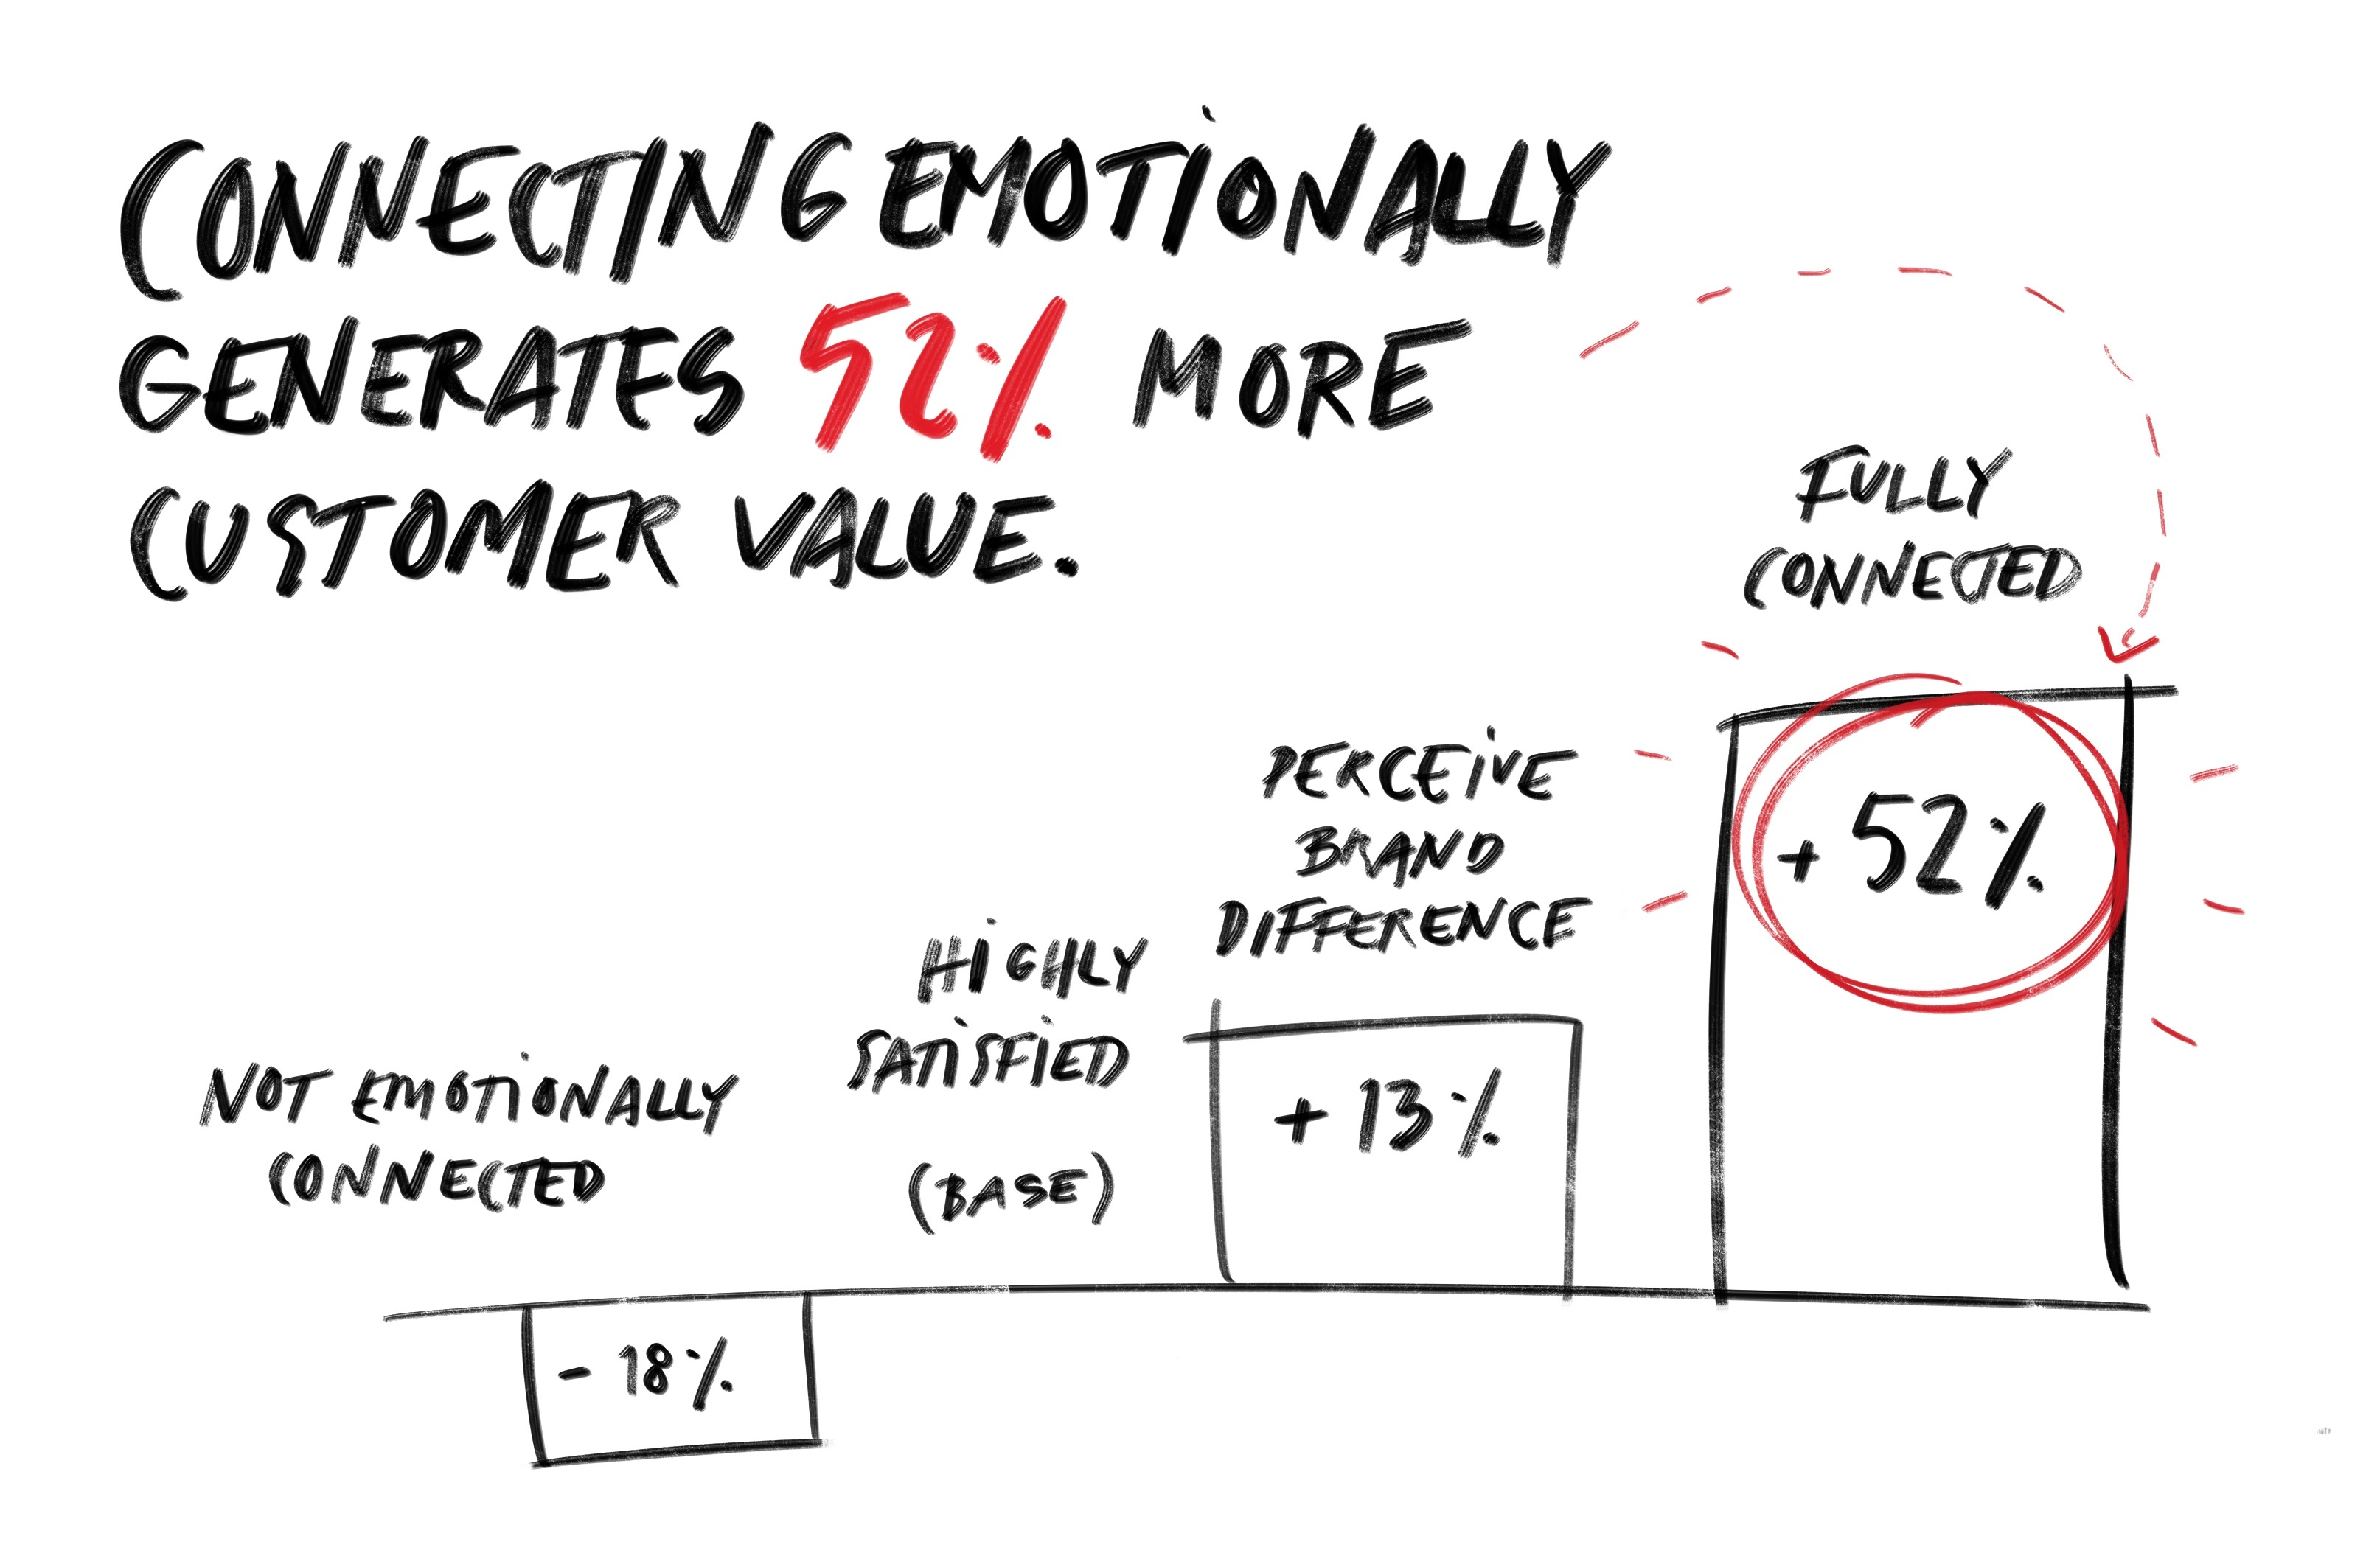 Customer Value through connecting emotionally